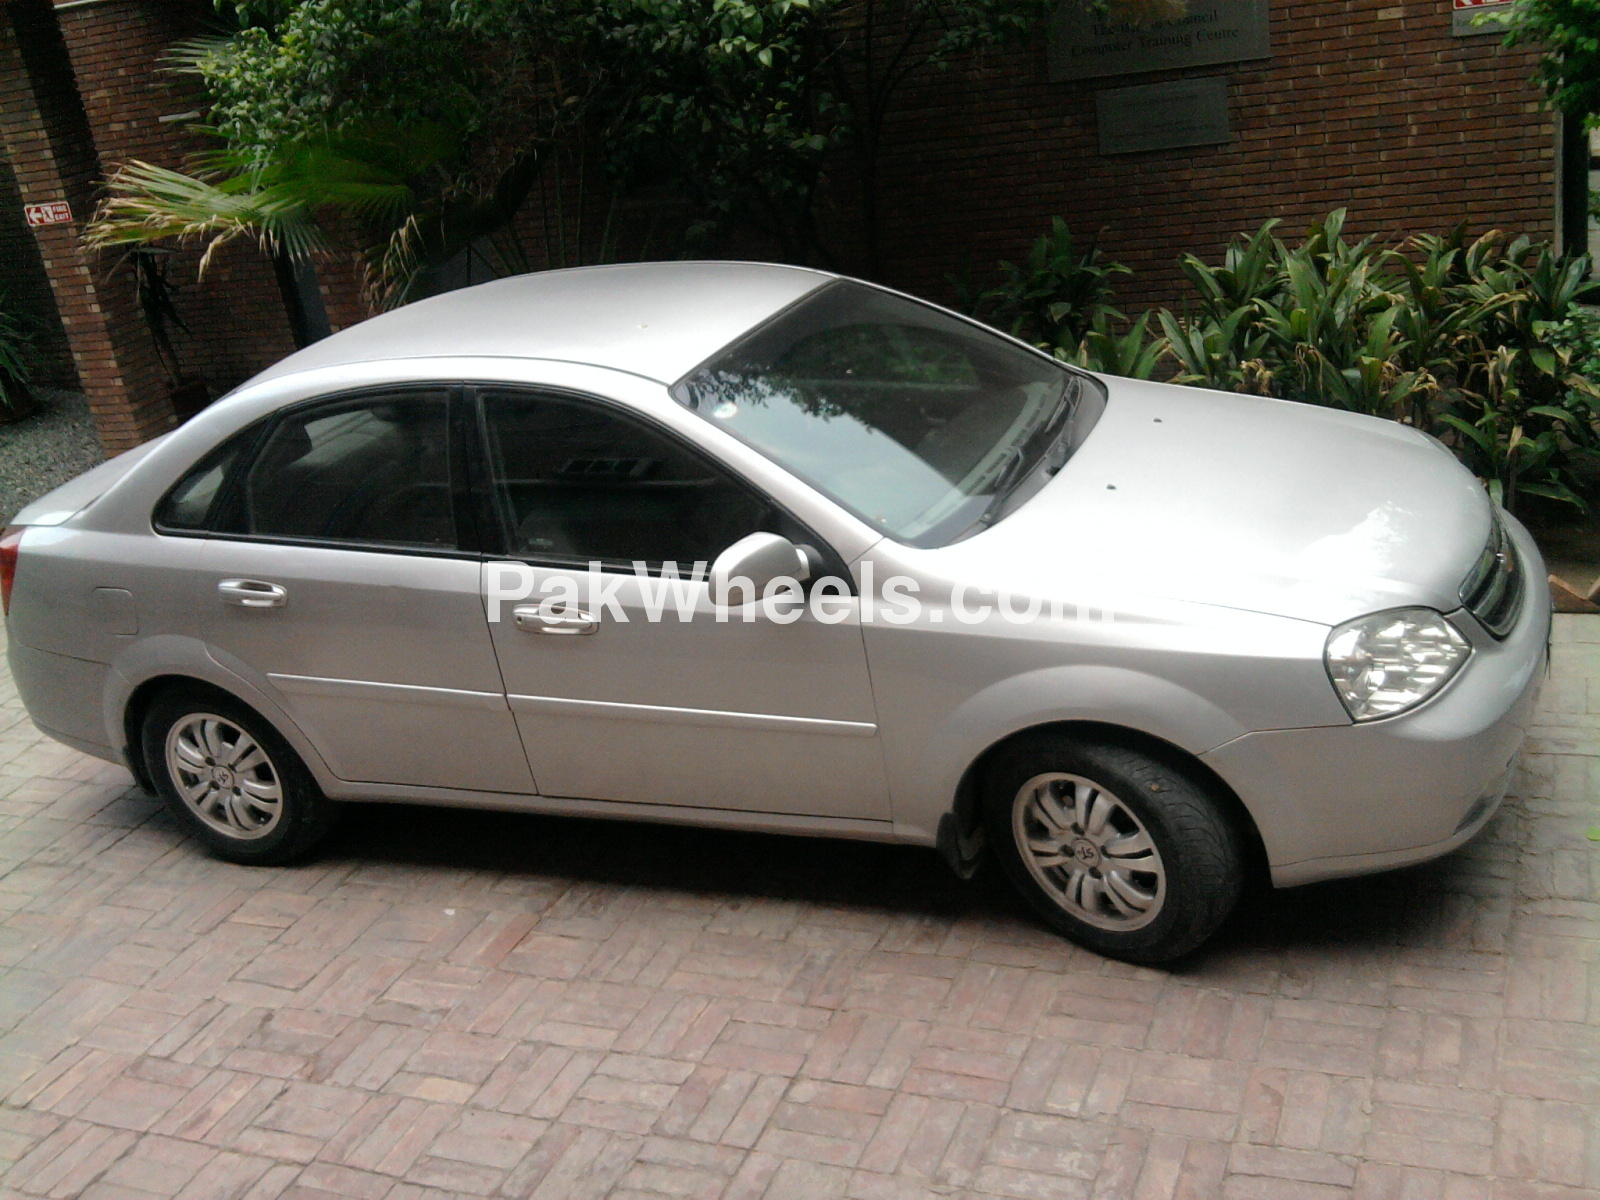 Bike Insurance Online >> Chevrolet Optra LS 2005 for sale in Lahore | PakWheels